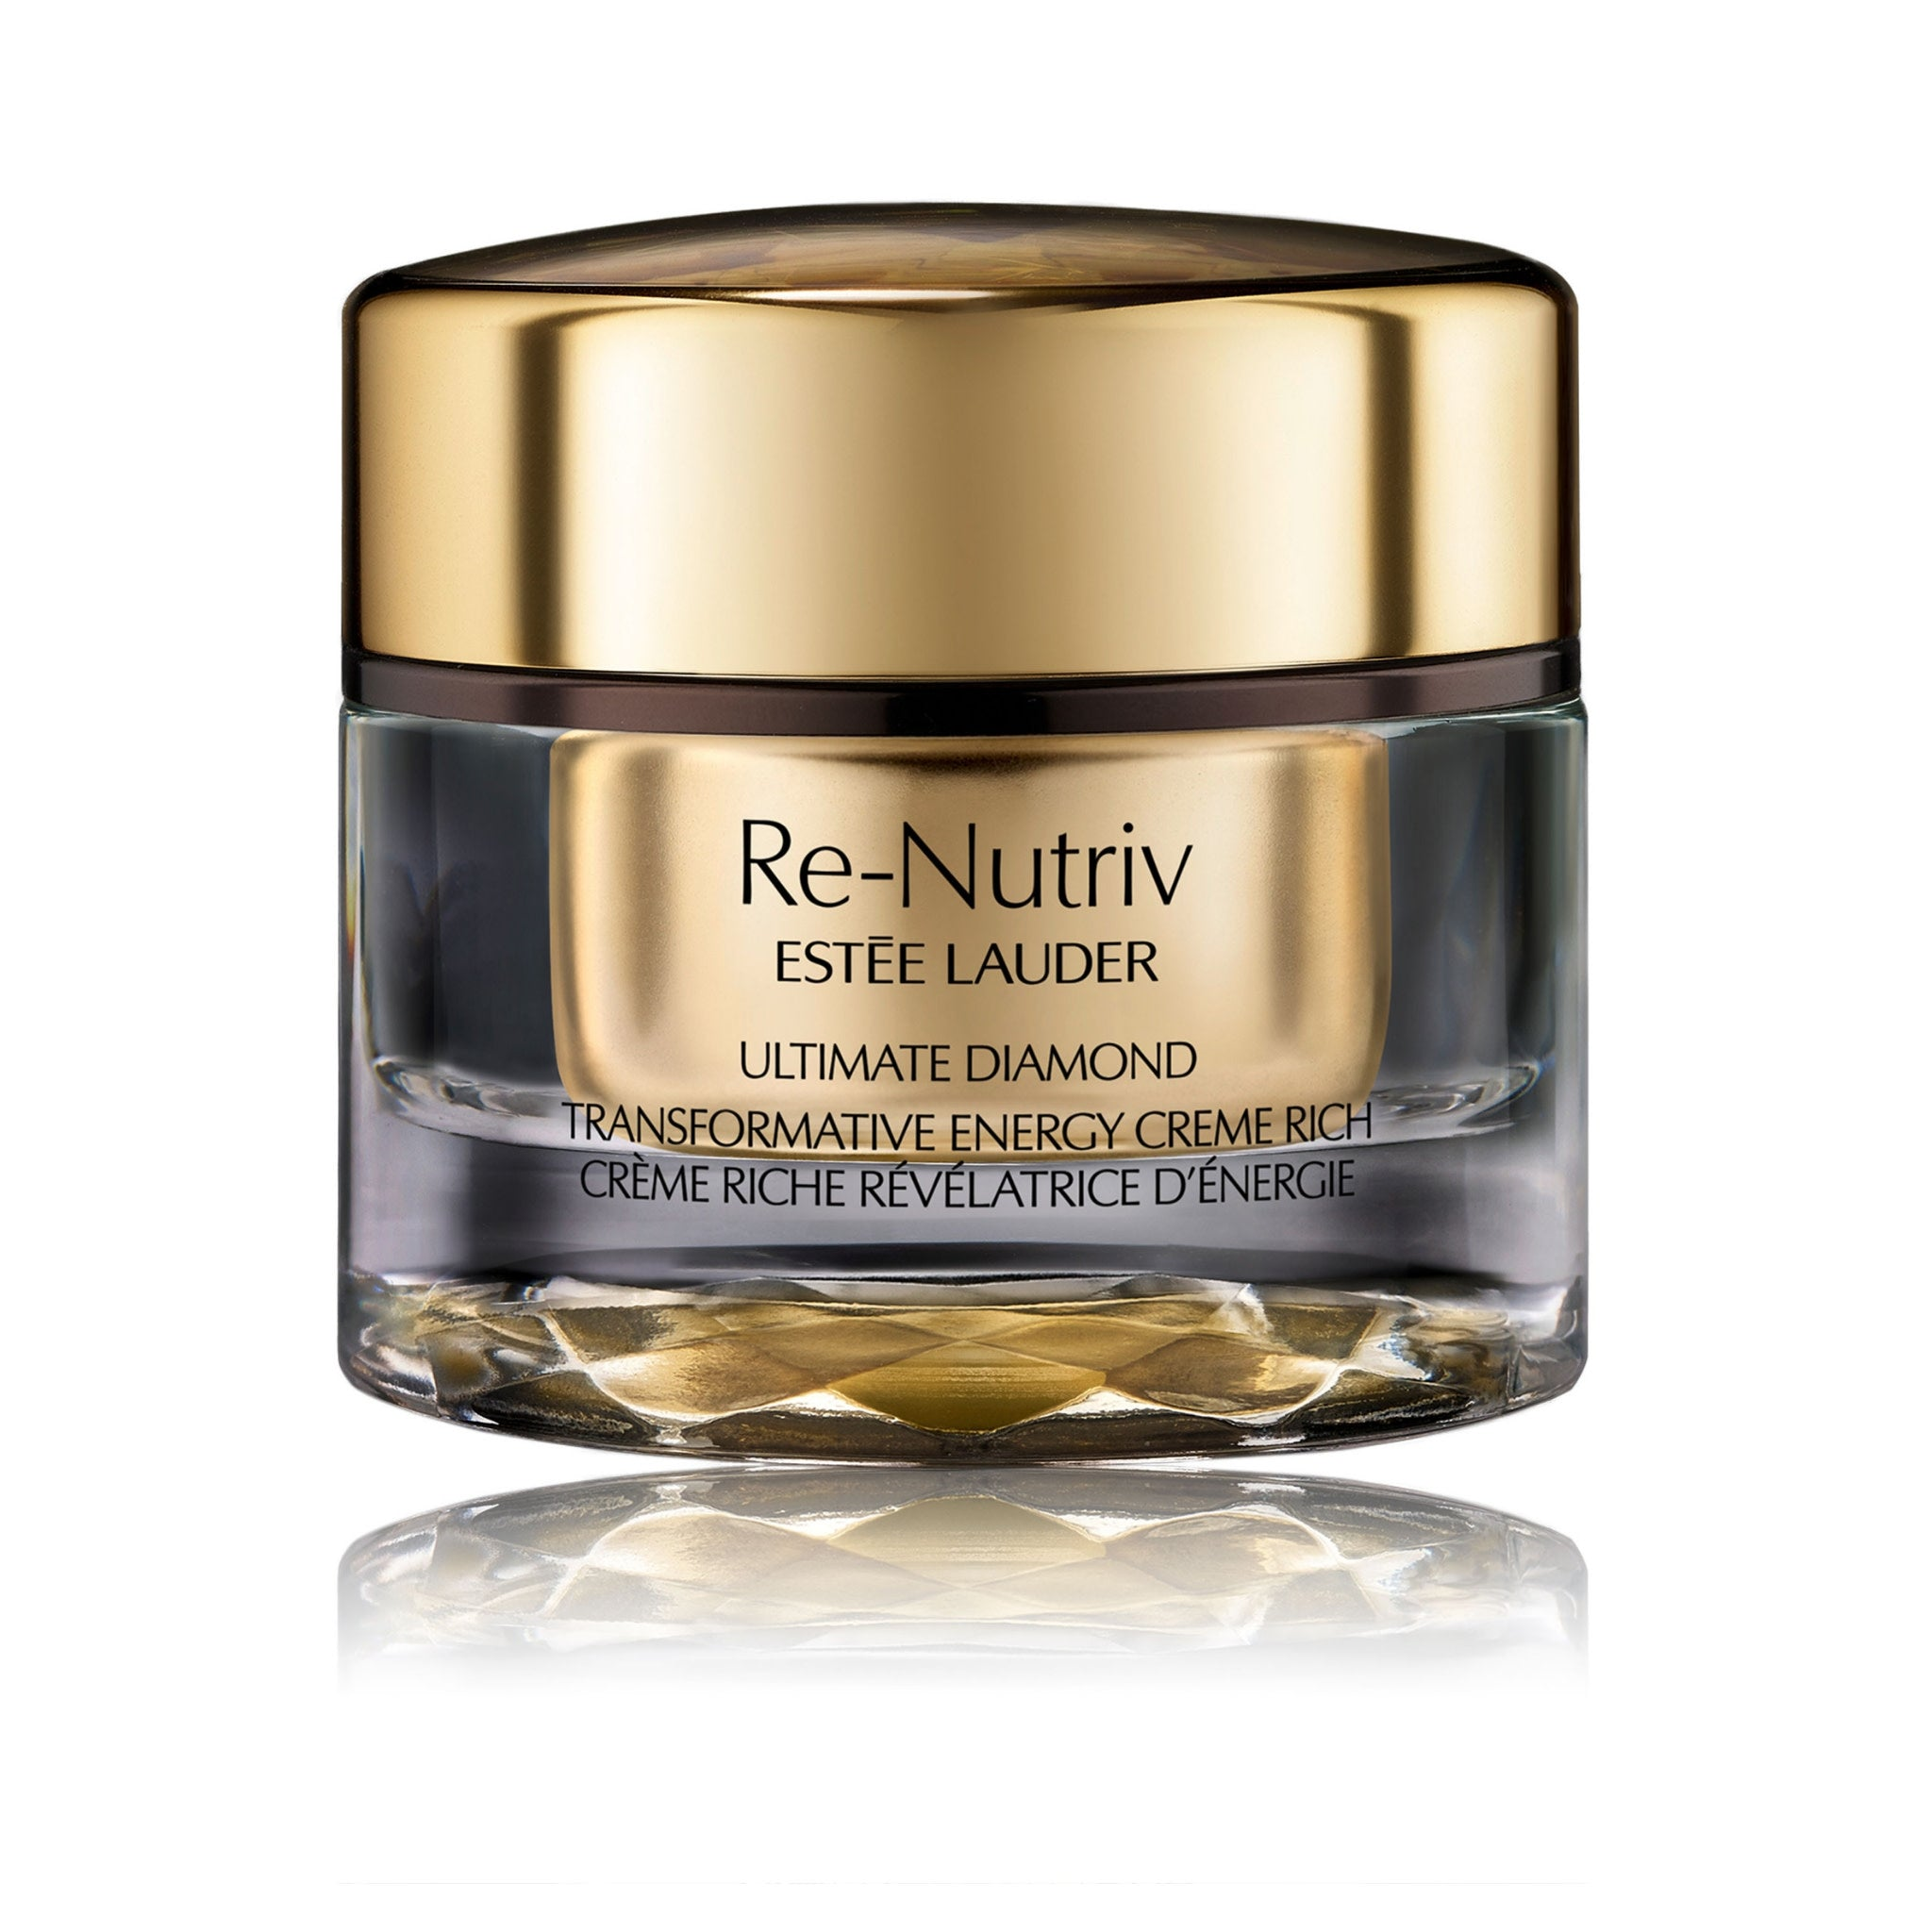 Re-Nutriv Ultimate Diamond Transformative Energy Creme Rich